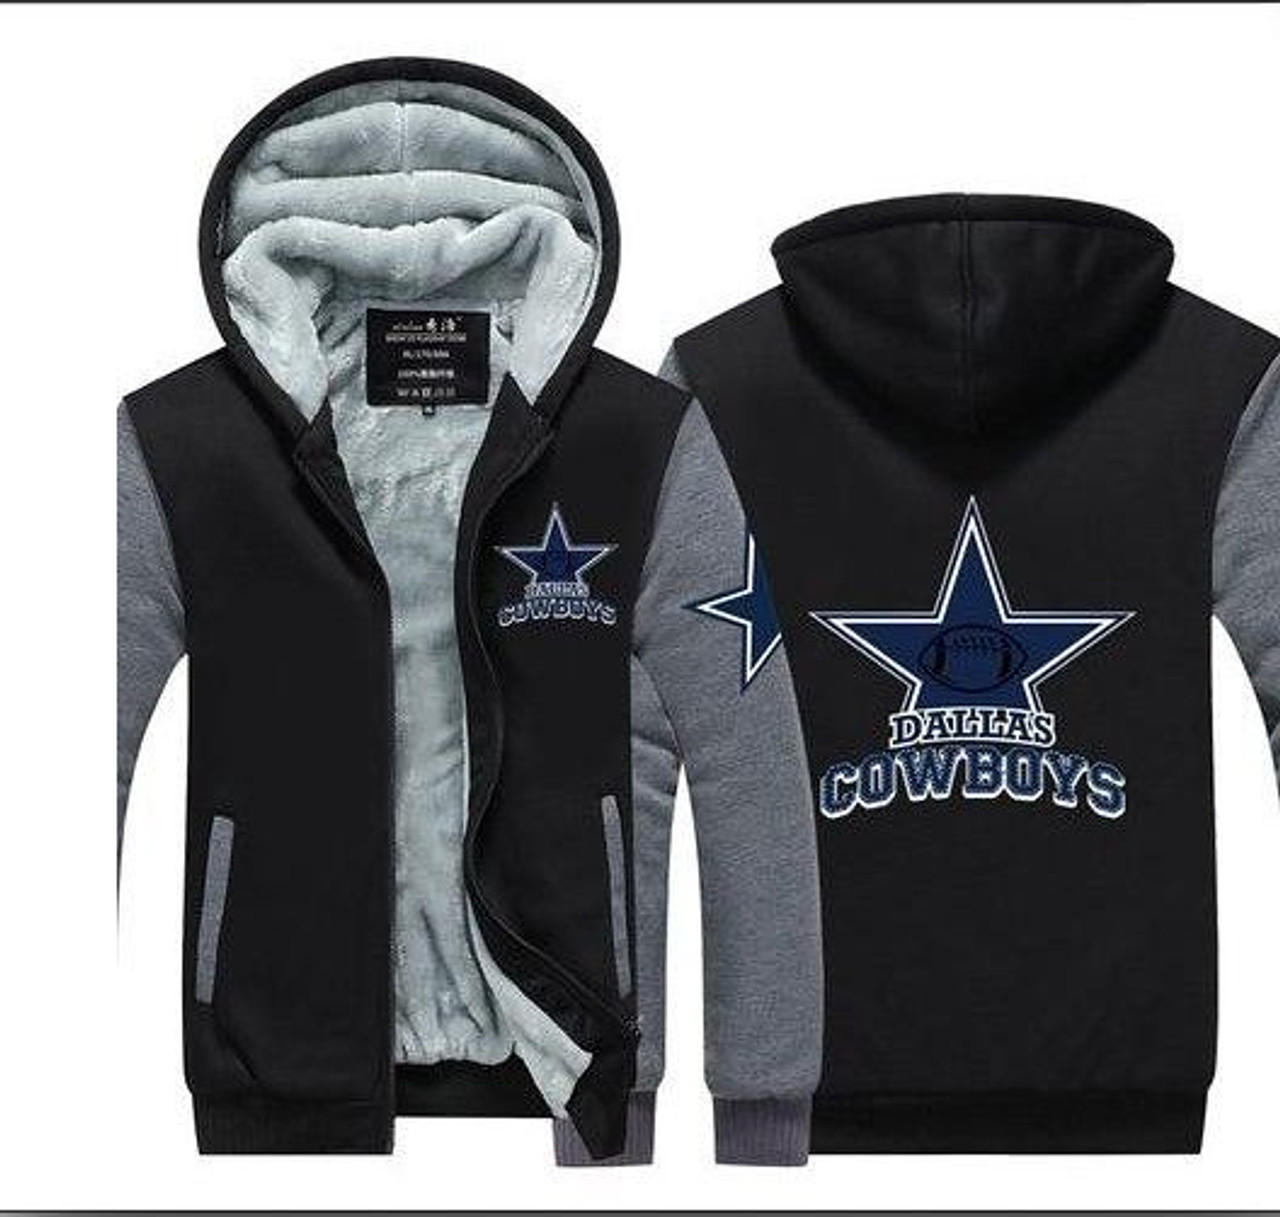 huge discount 2bab8 1cb32 **(COWBOYS/NEW-OFFICIALLY-LICENSED-N.F.L.  DALLAS-COWBOYS/NEW-TWO-TONE-STYLE,FLEECE-LINED-TEAM-JACKETS/3-D-CUSTOM-DETAILED-GRAPHIC-PRINTED-DOUBLE-SIDED...